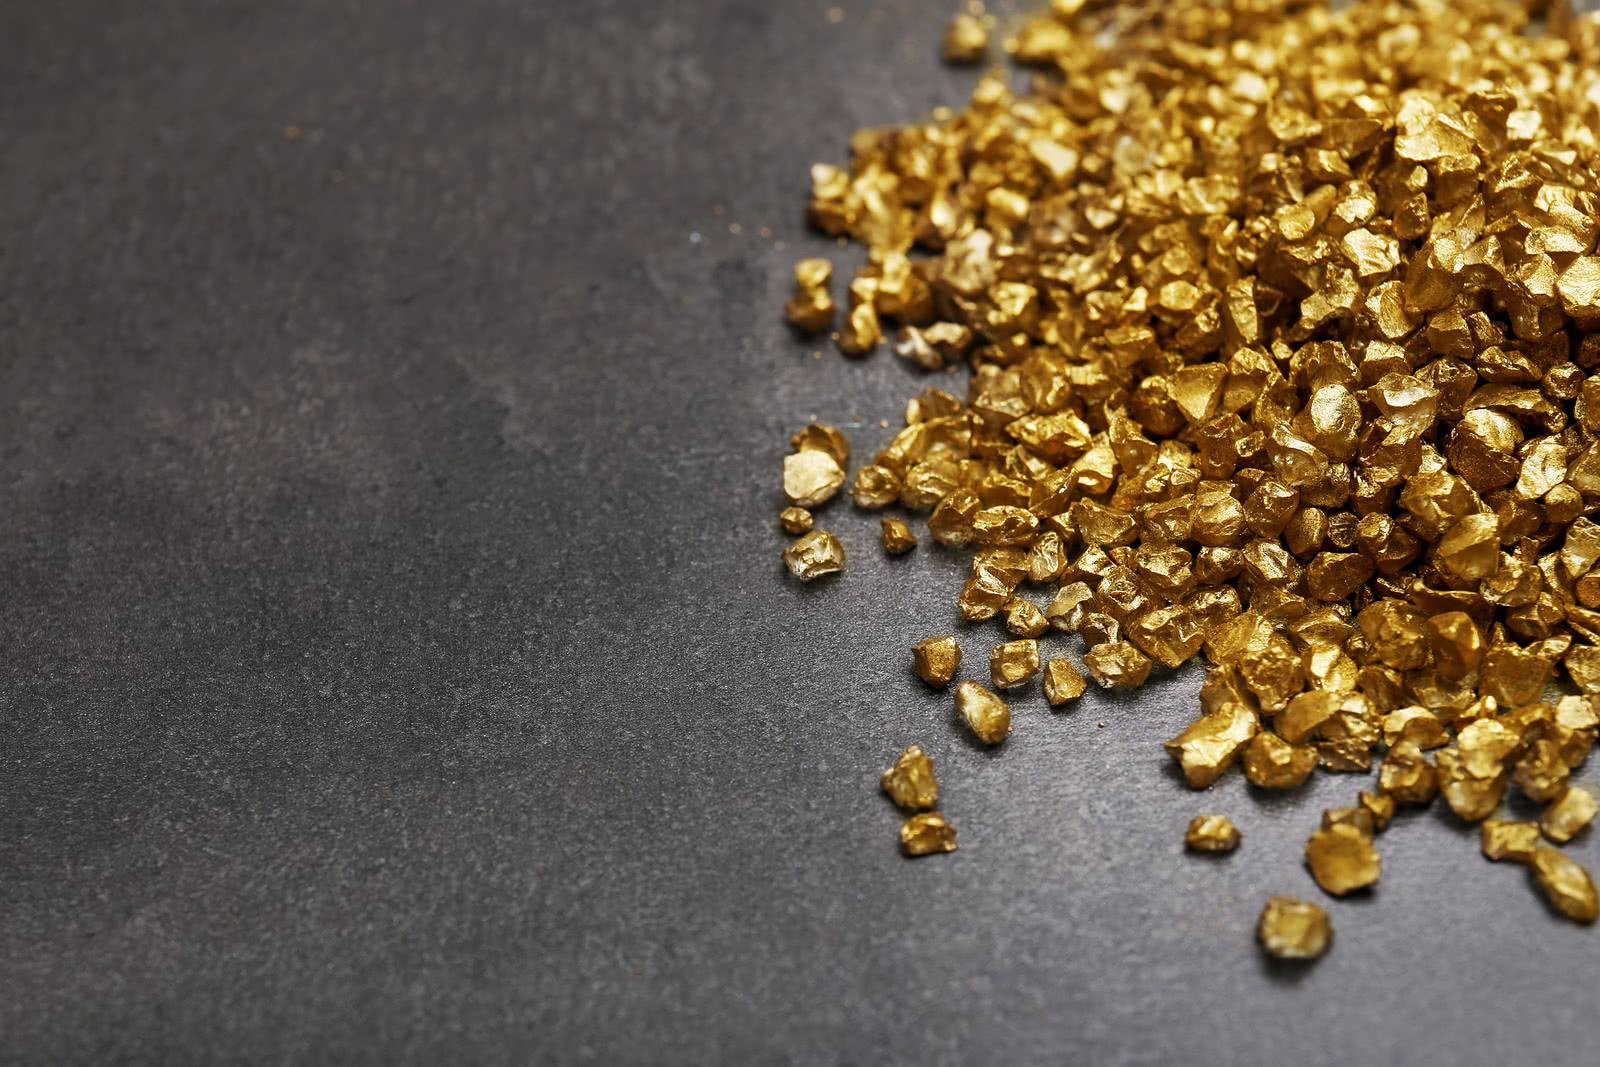 Find gold hidden in that pile of paperwork with these small business tax deductions.